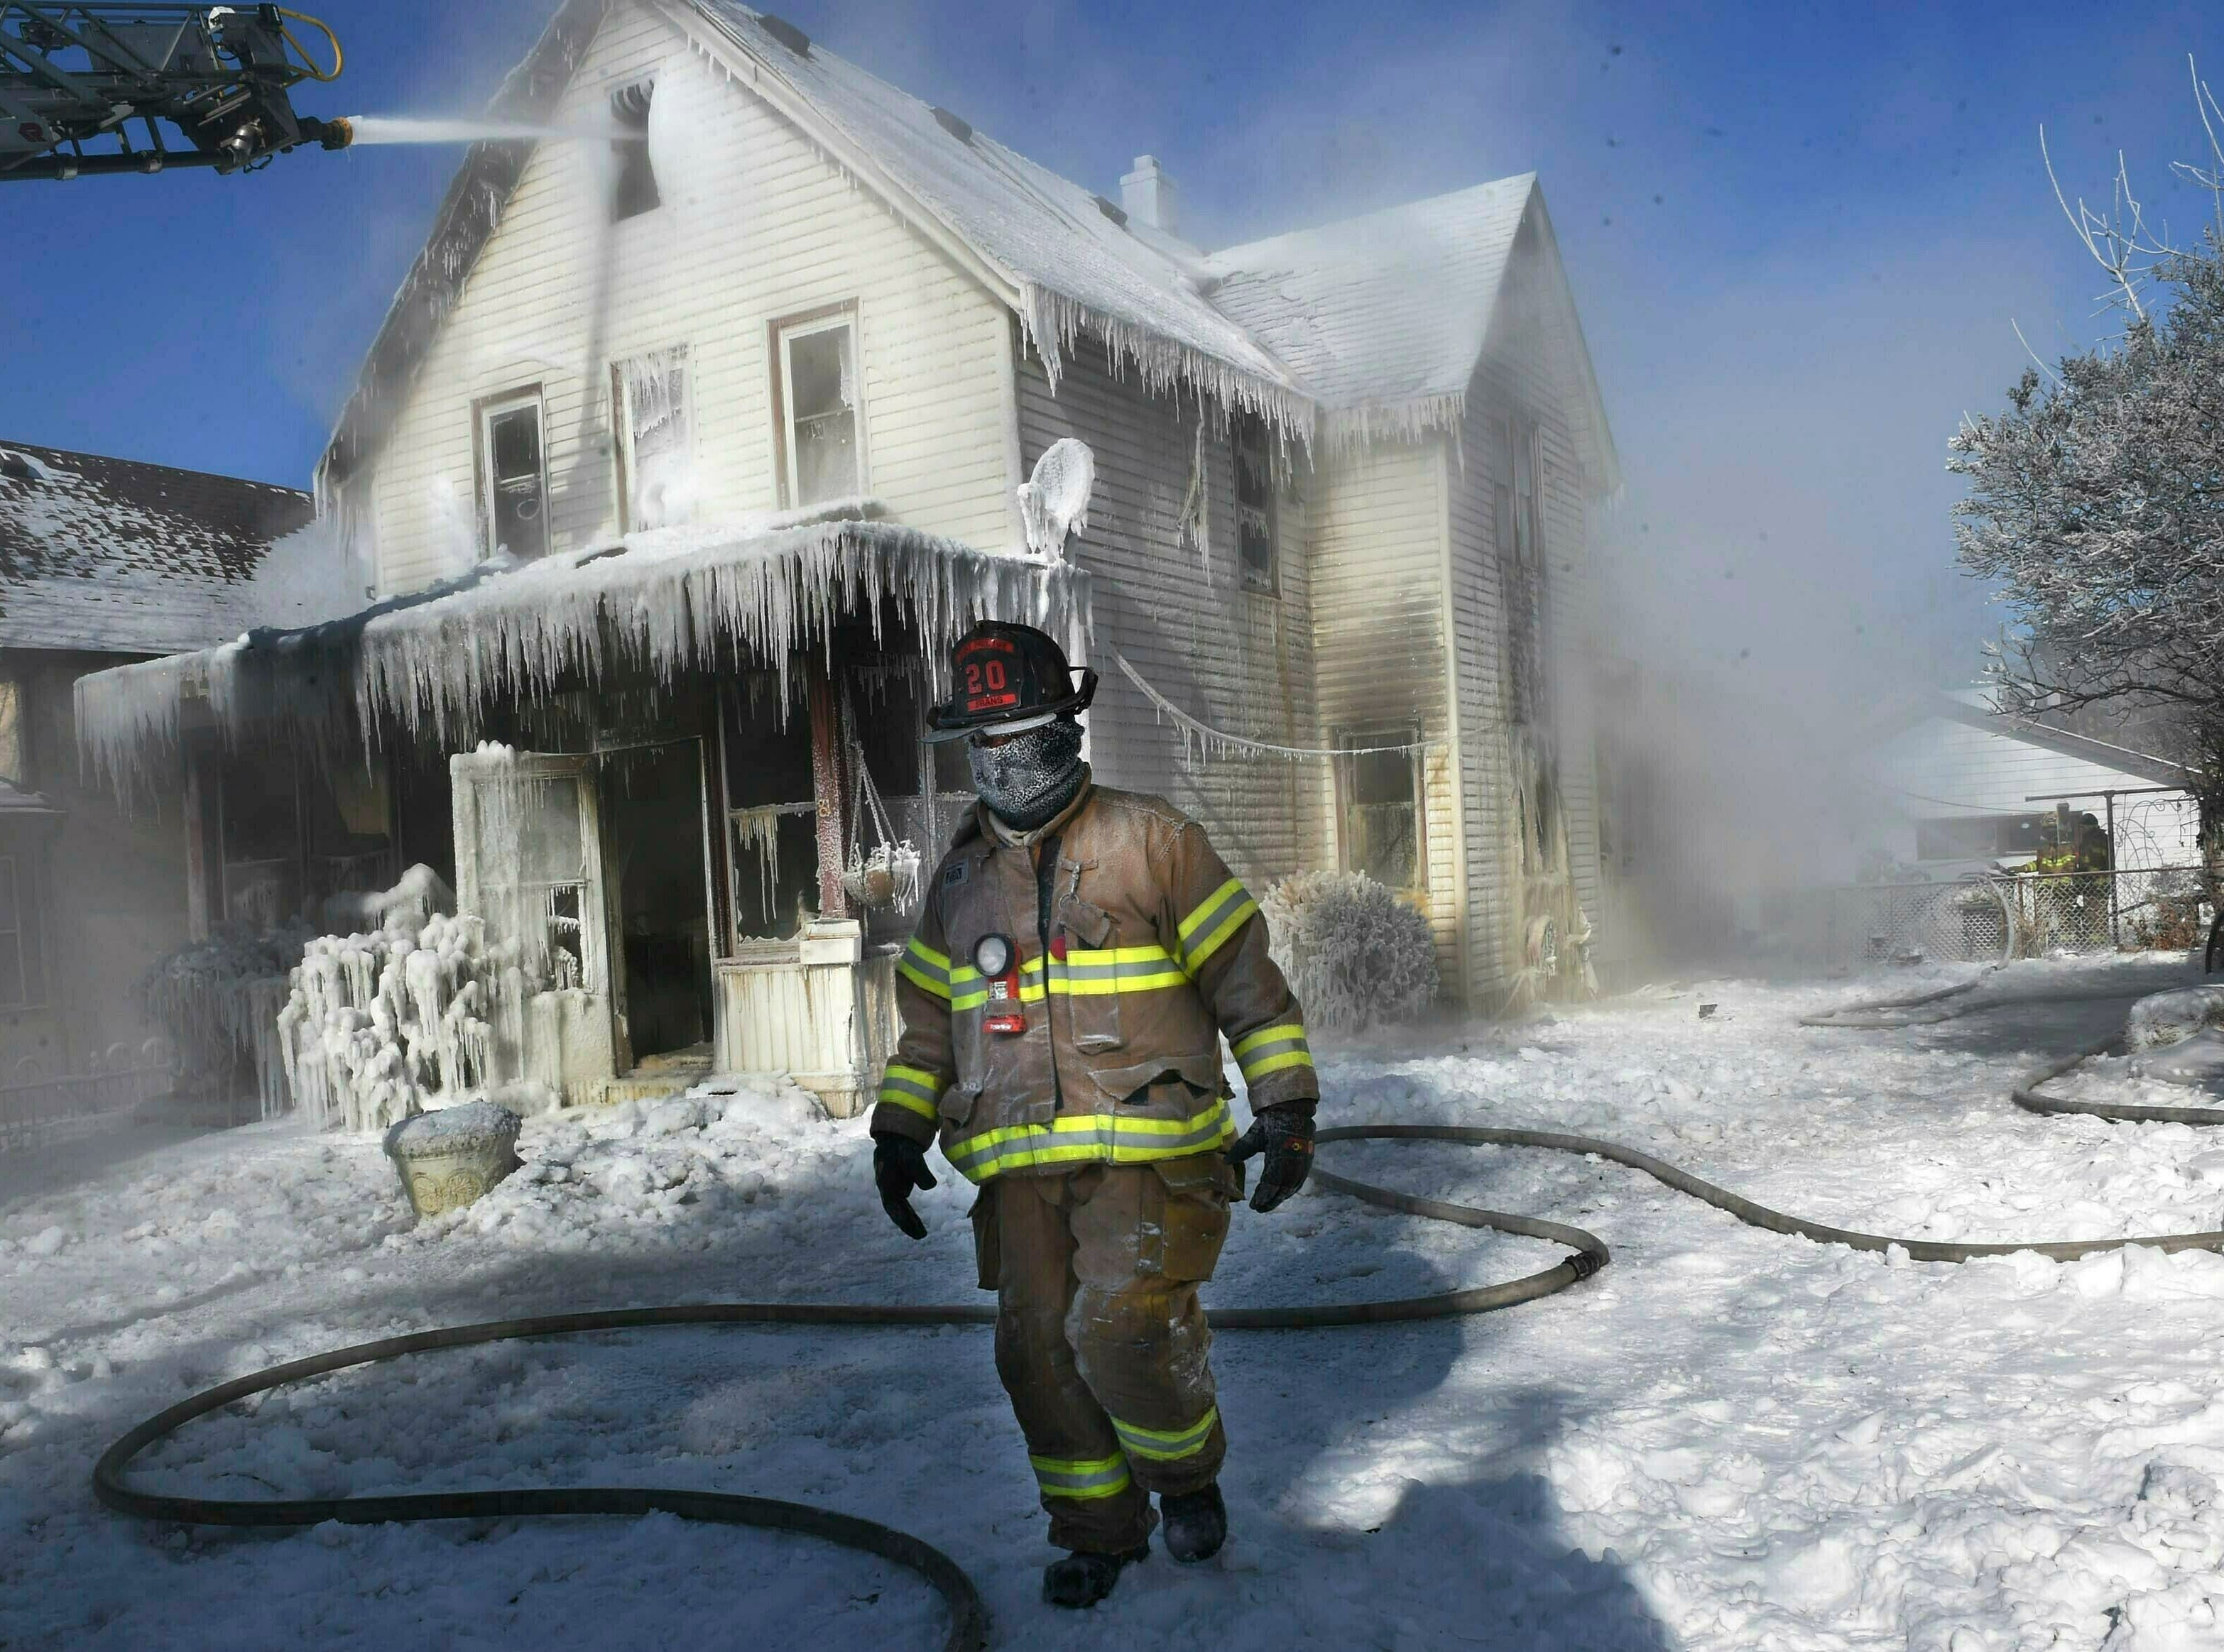 A firefighter walks past an ice-encrusted home after an early morning house fire Wednesday, Jan. 30, 2019 in St. Paul, Minn. Firefighters were called to the house fire in the North End shortly after 4:15 a.m. The air temperature was 27 degrees below zero Wednesday morning, with windchills at 52 degrees below zero. No injuries were reported.